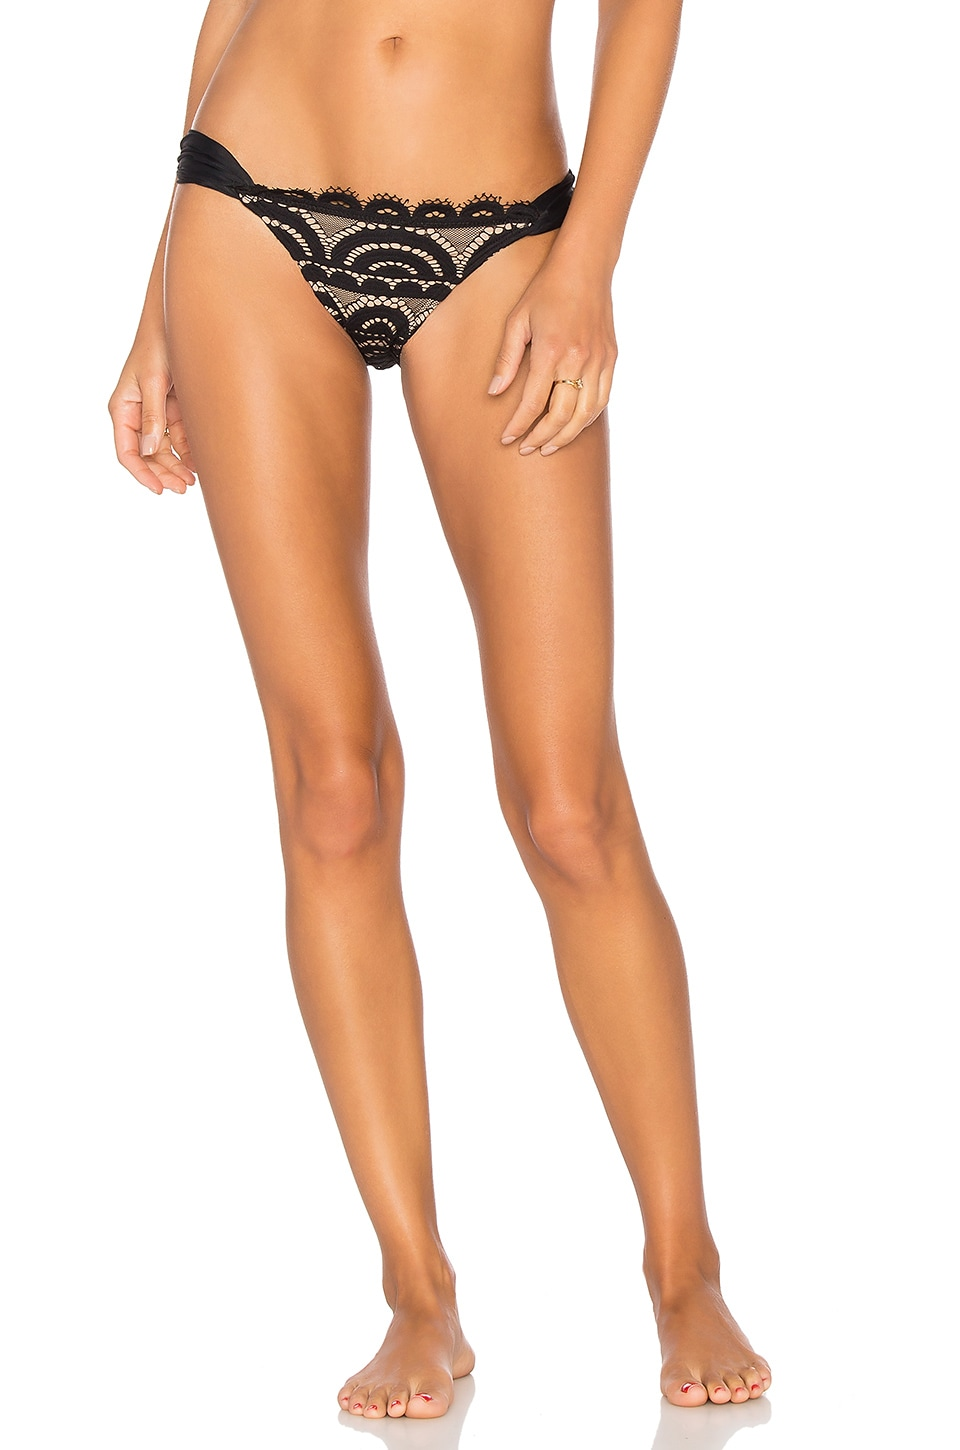 PILYQ Black Lace Fanned Teeny Bikini Bottom